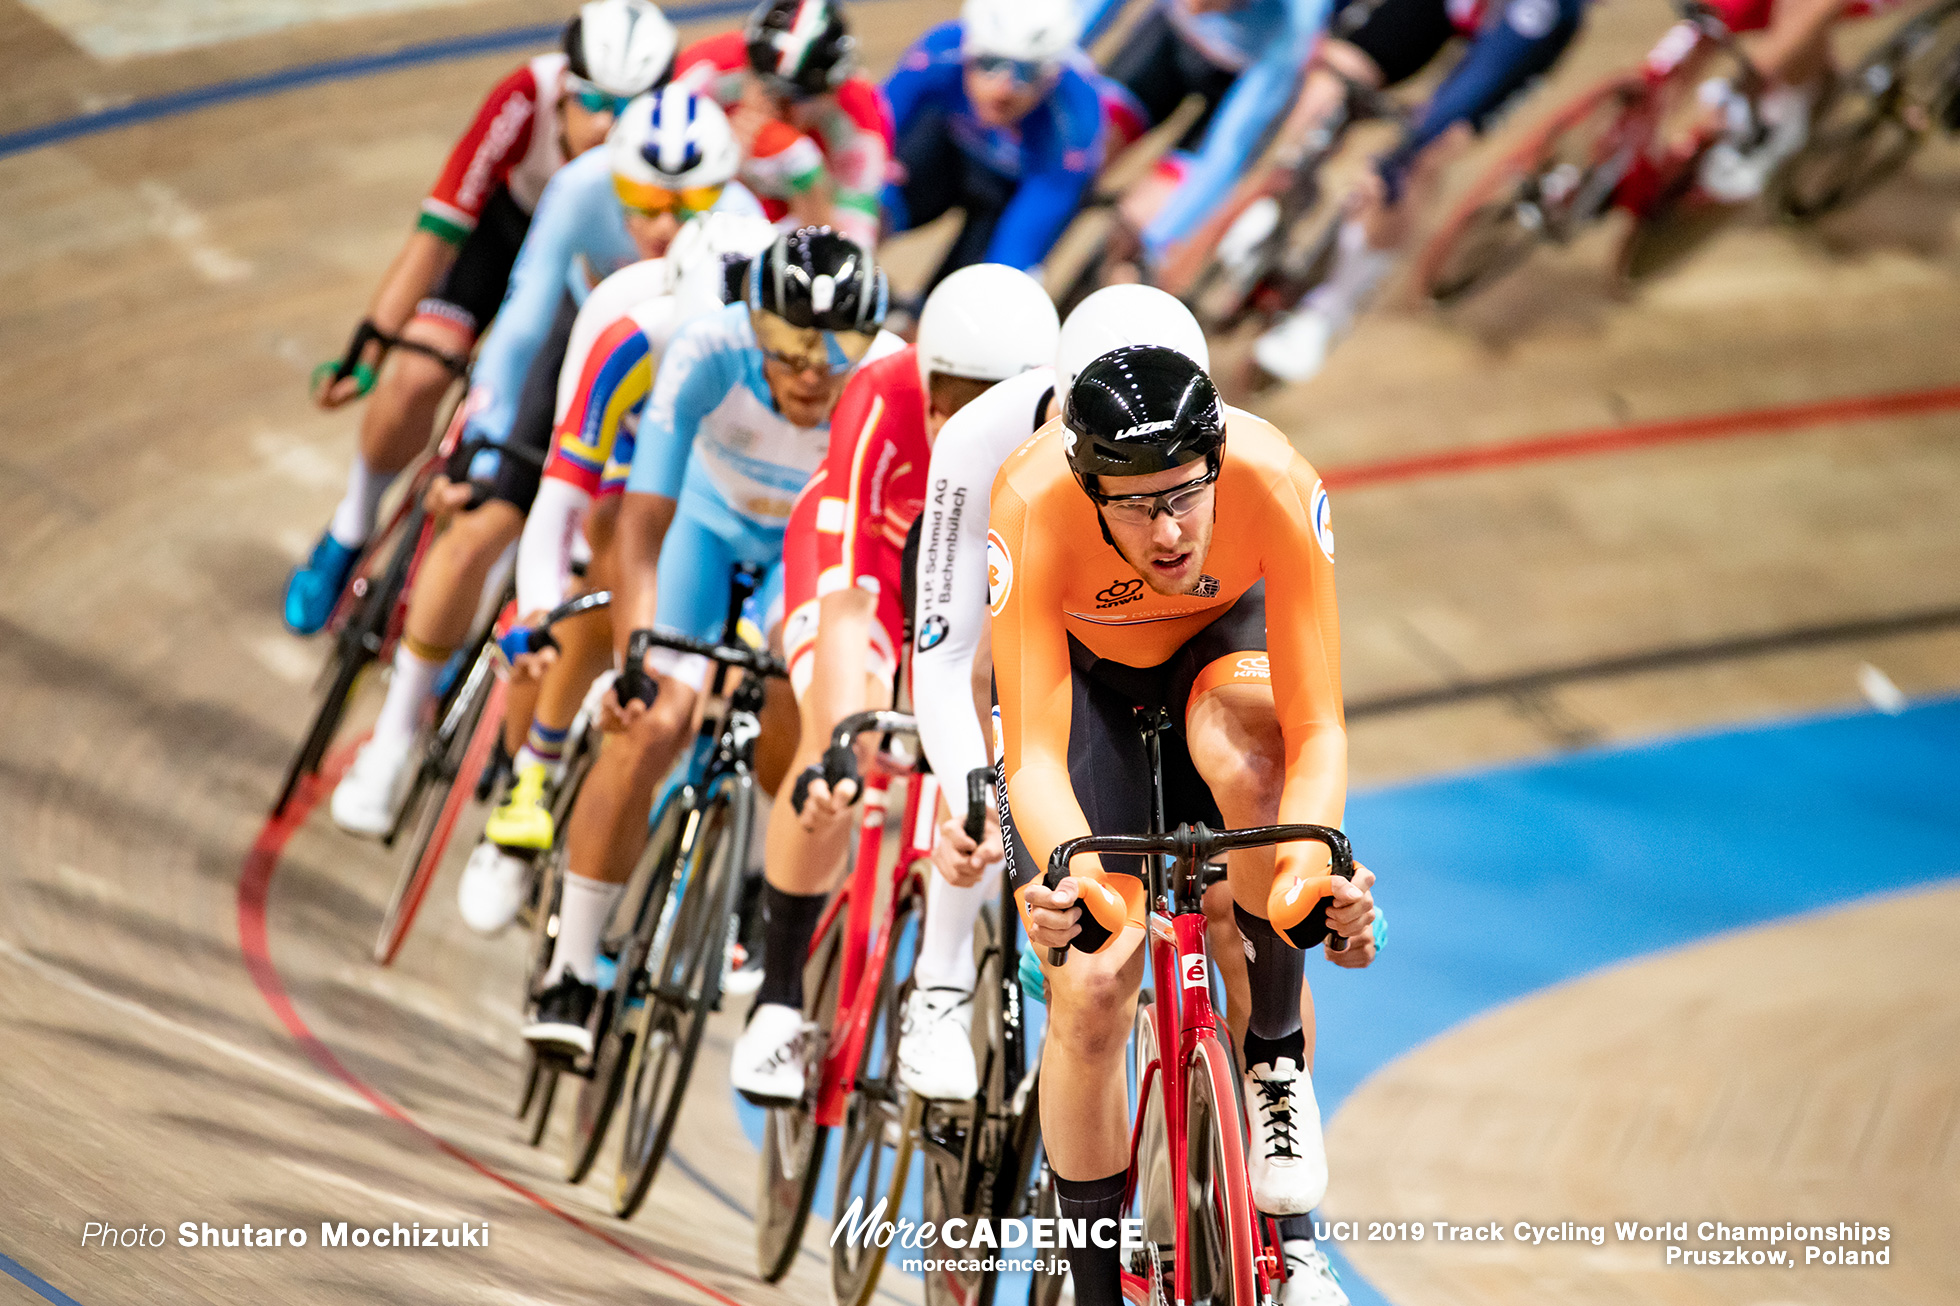 Men's Omnium Scratch / 2019 Track Cycling World Championships Pruszków, Poland